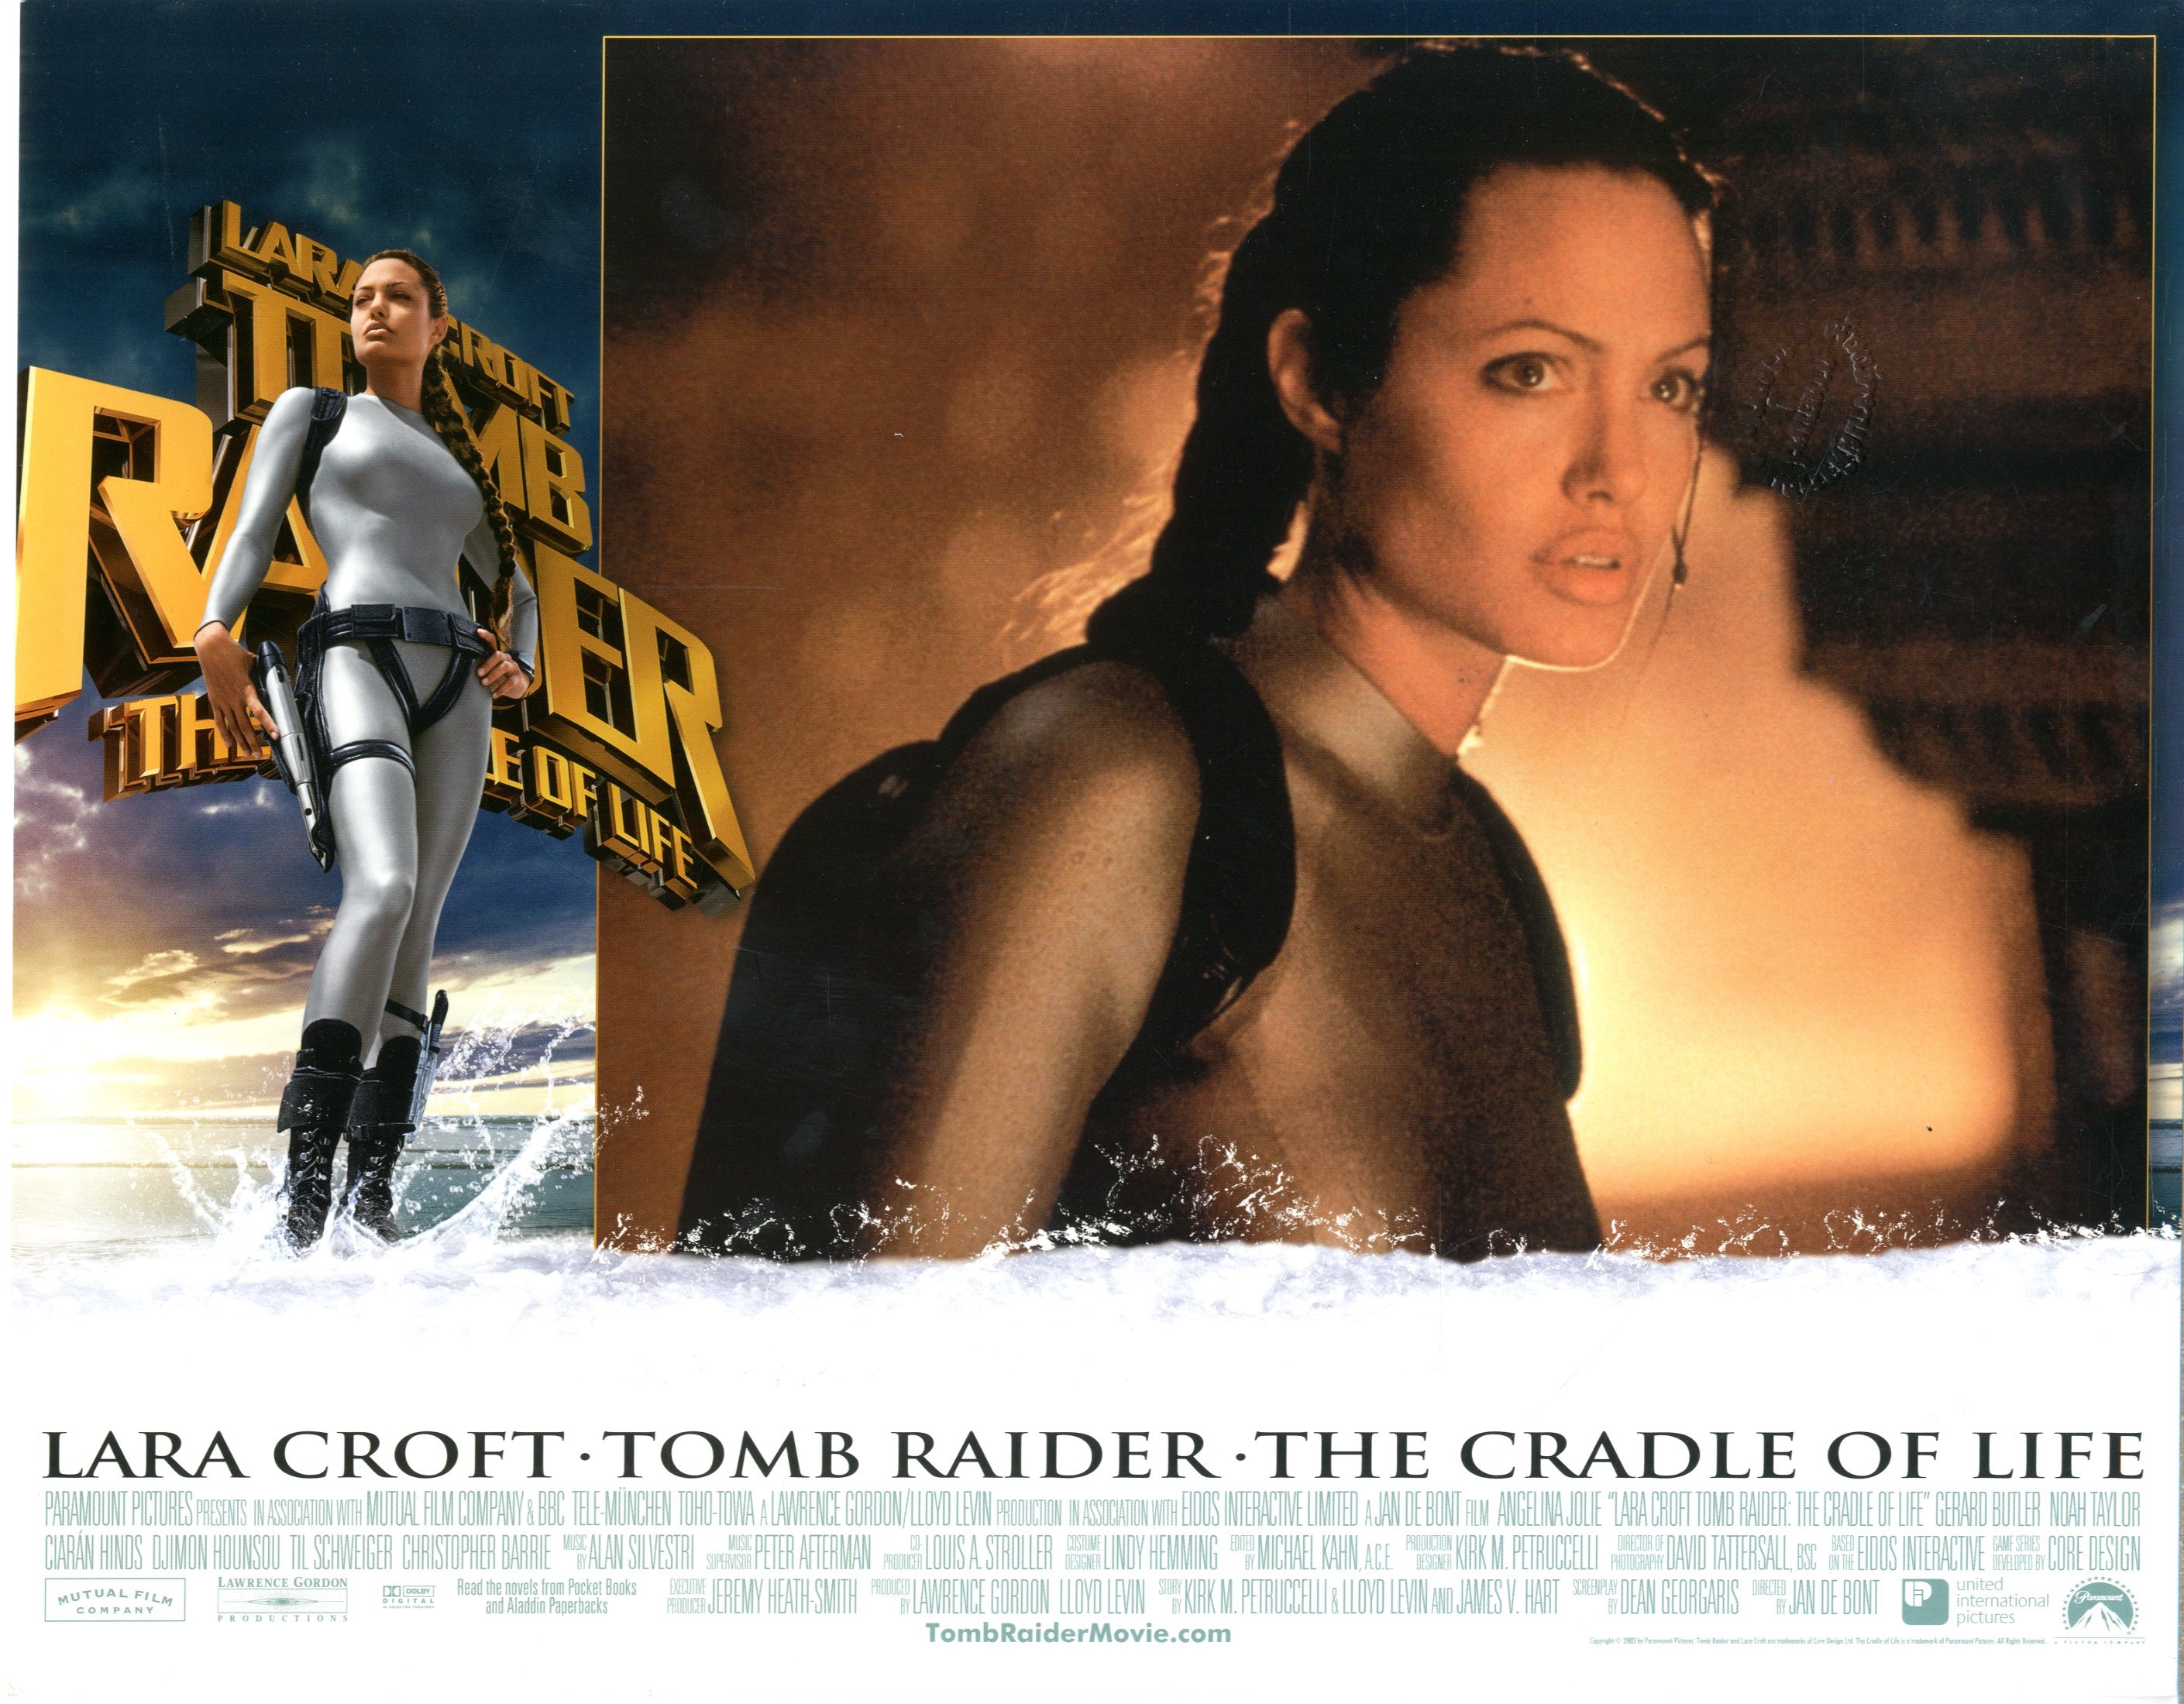 Lara Croft Tomb Raider Cradle Of Life 2003 Sold Details Four Color Comics